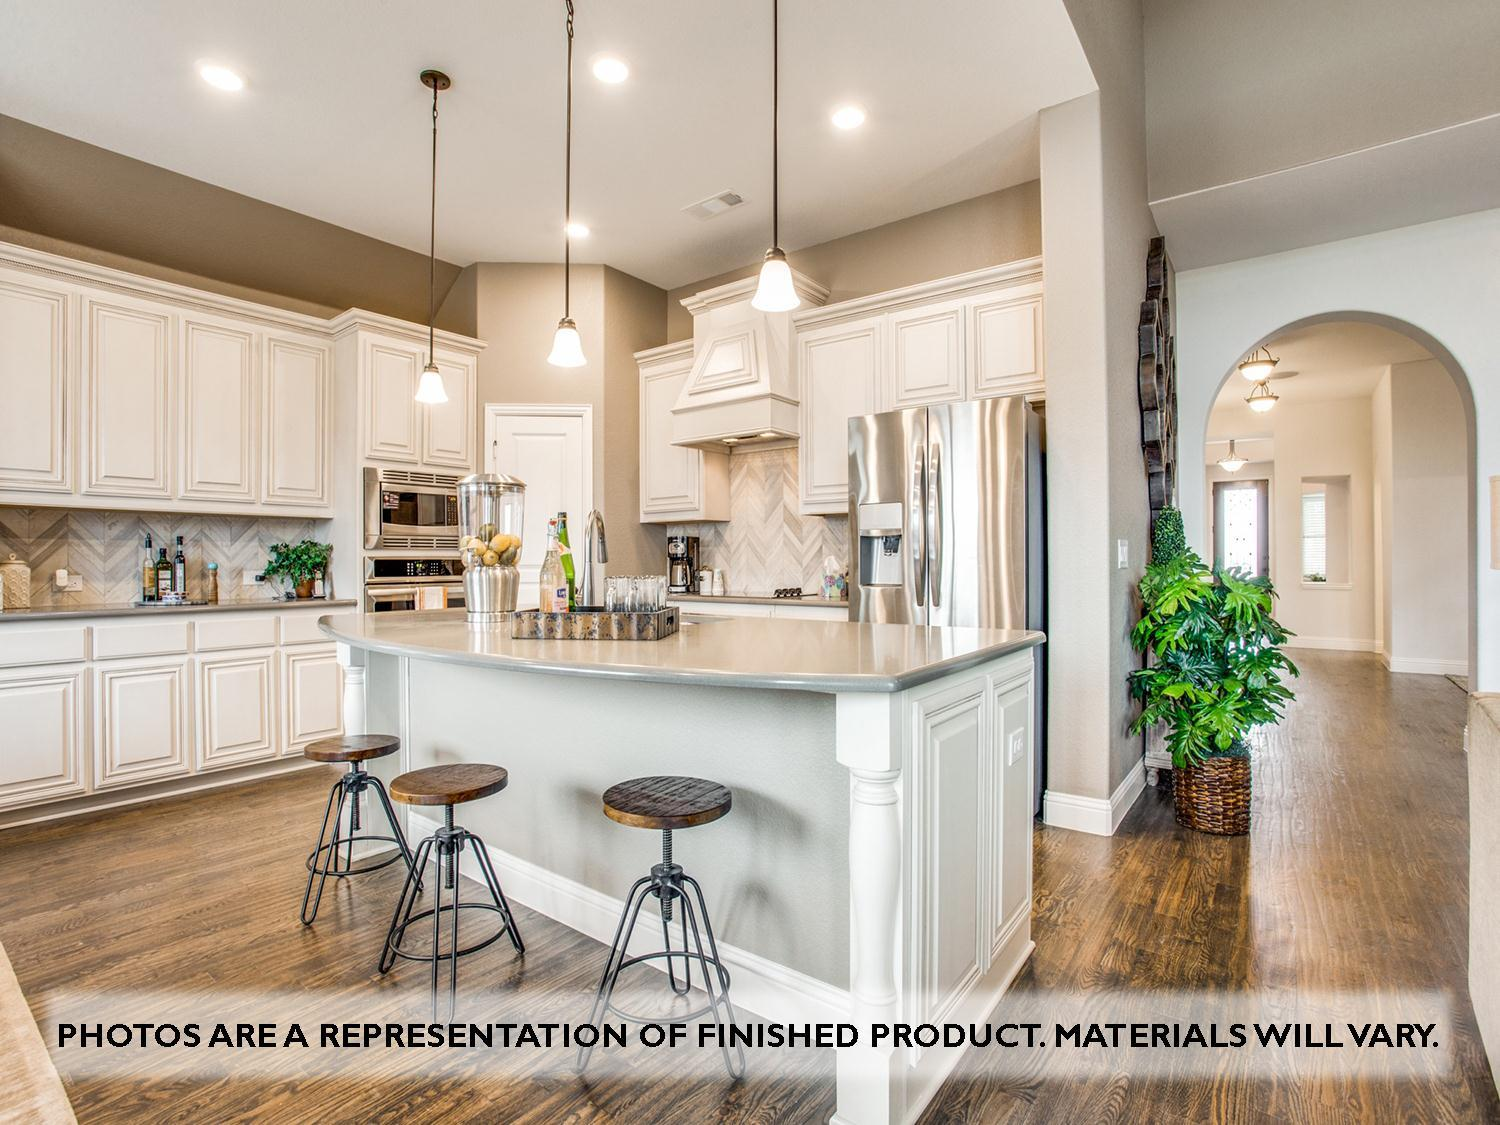 Kitchen featured in the Primrose II By Bloomfield Homes in Dallas, TX